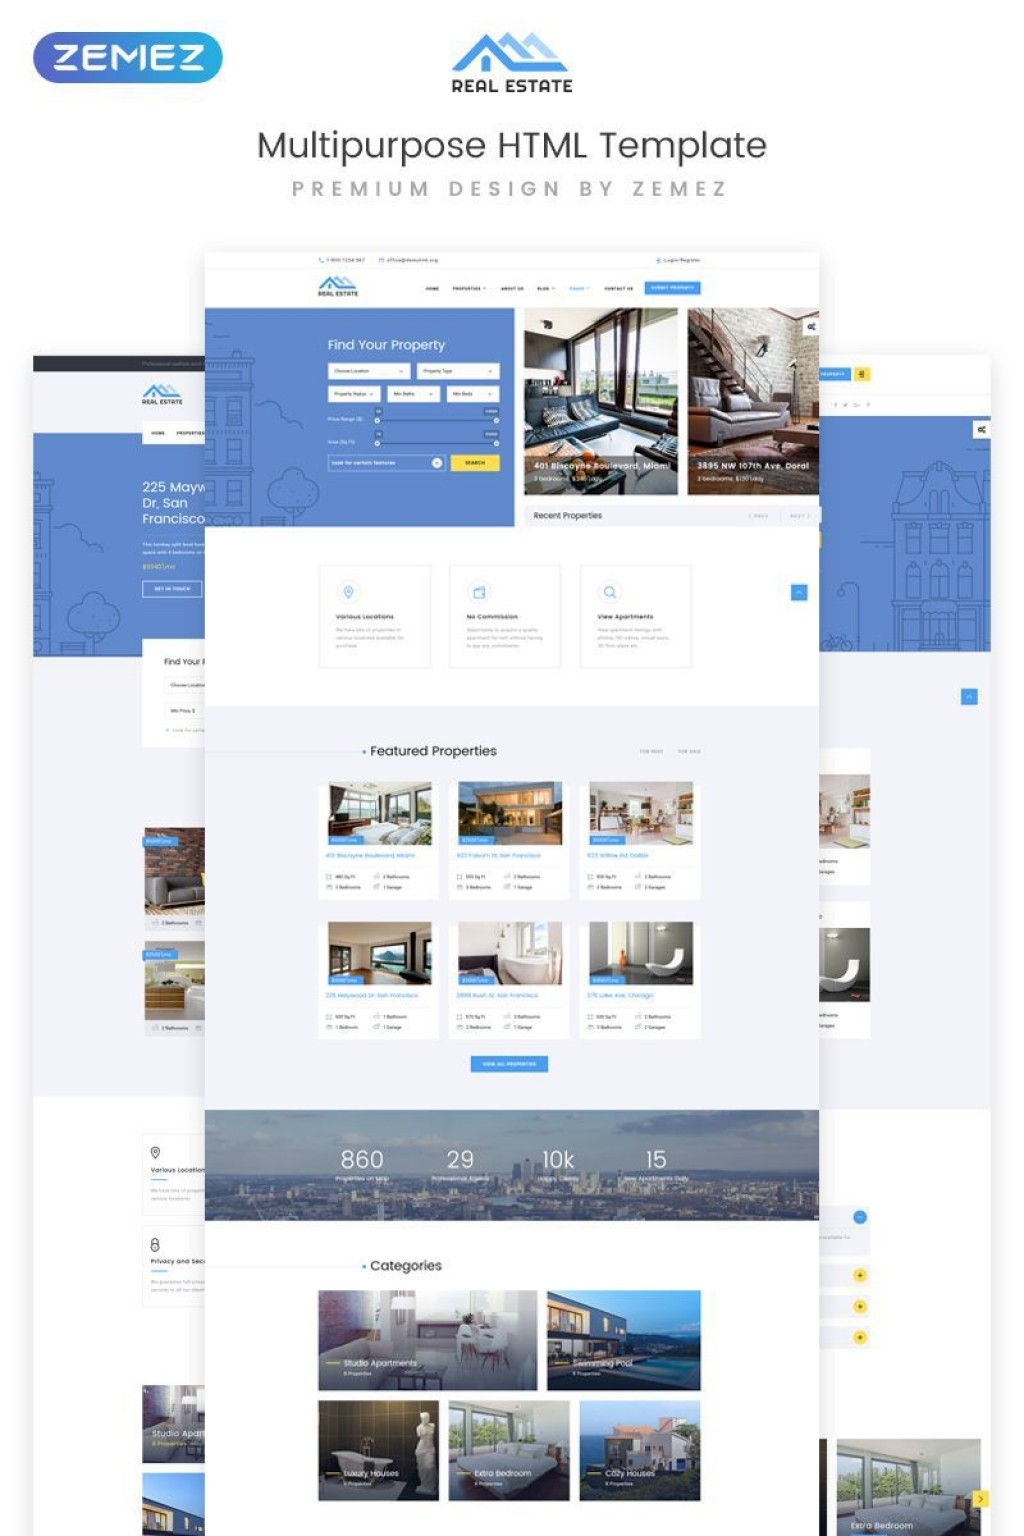 000 Unusual Real Estate Website Template Idea  Templates Free Download Bootstrap 4 Listing WordpresLarge